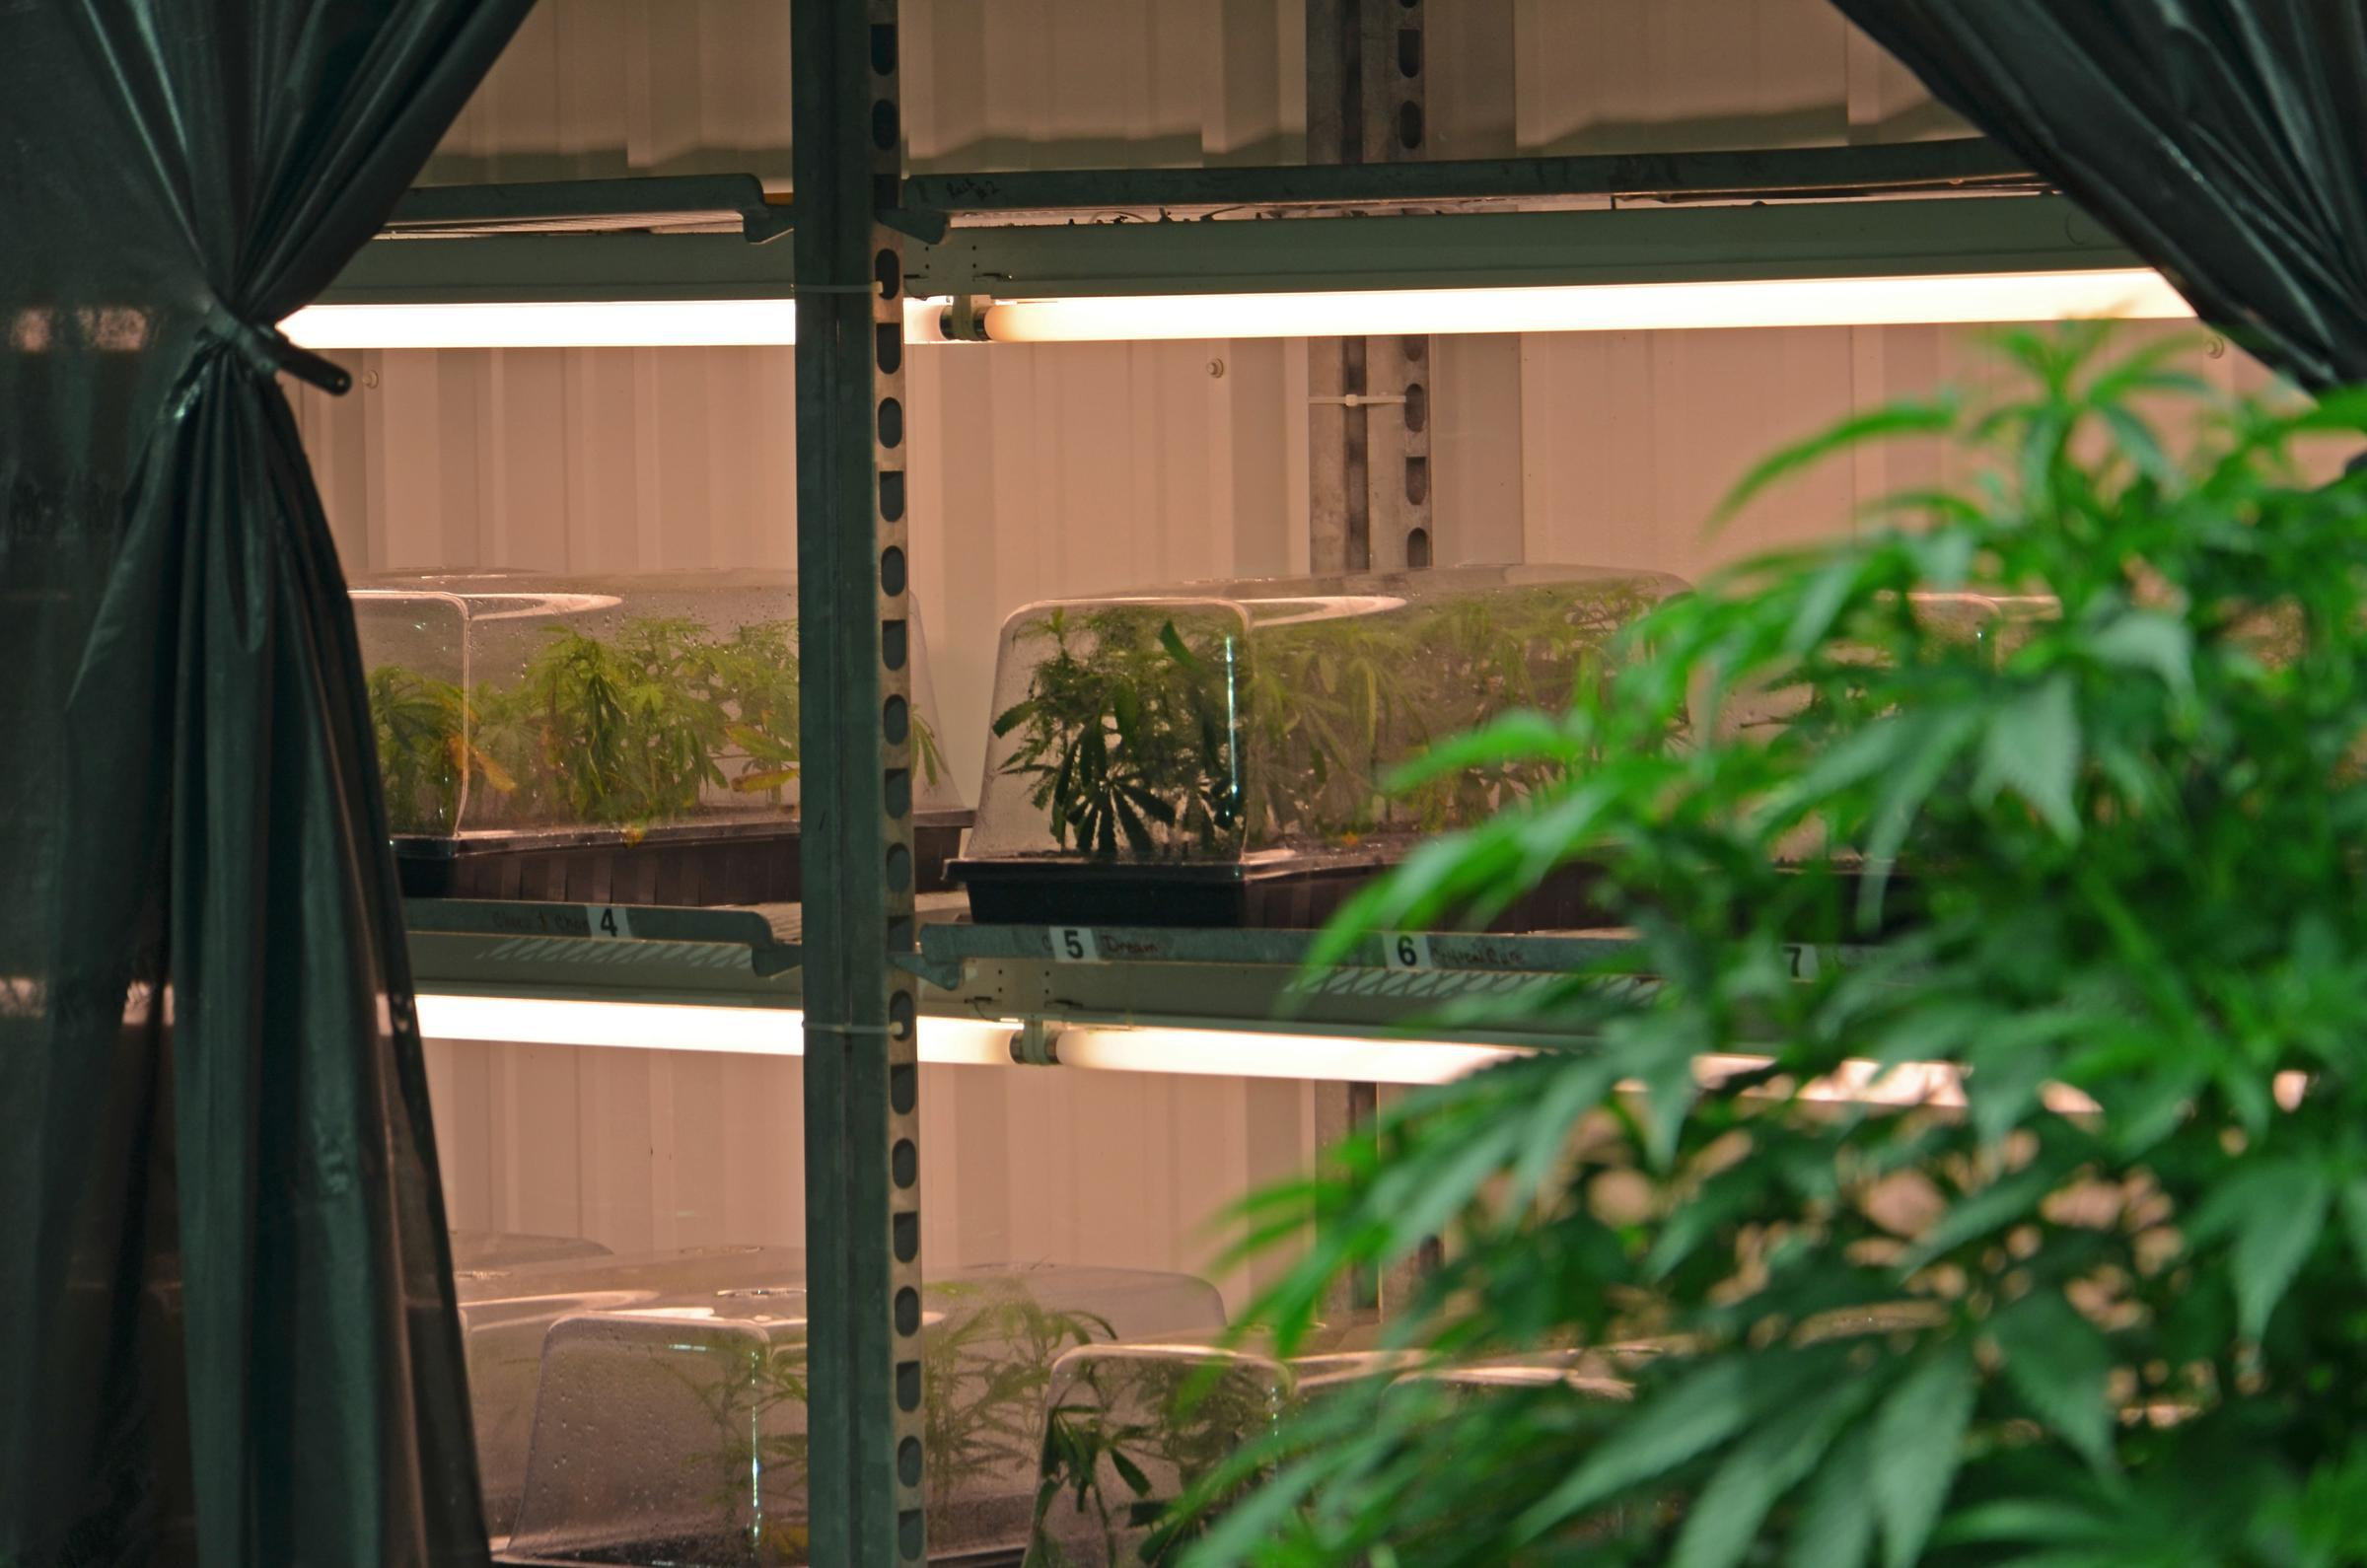 Illinois fulton county vermont - Medical Marijuana Plants Get Started In The Vegetative Room Where The Lights Are On 24 Hours A Day